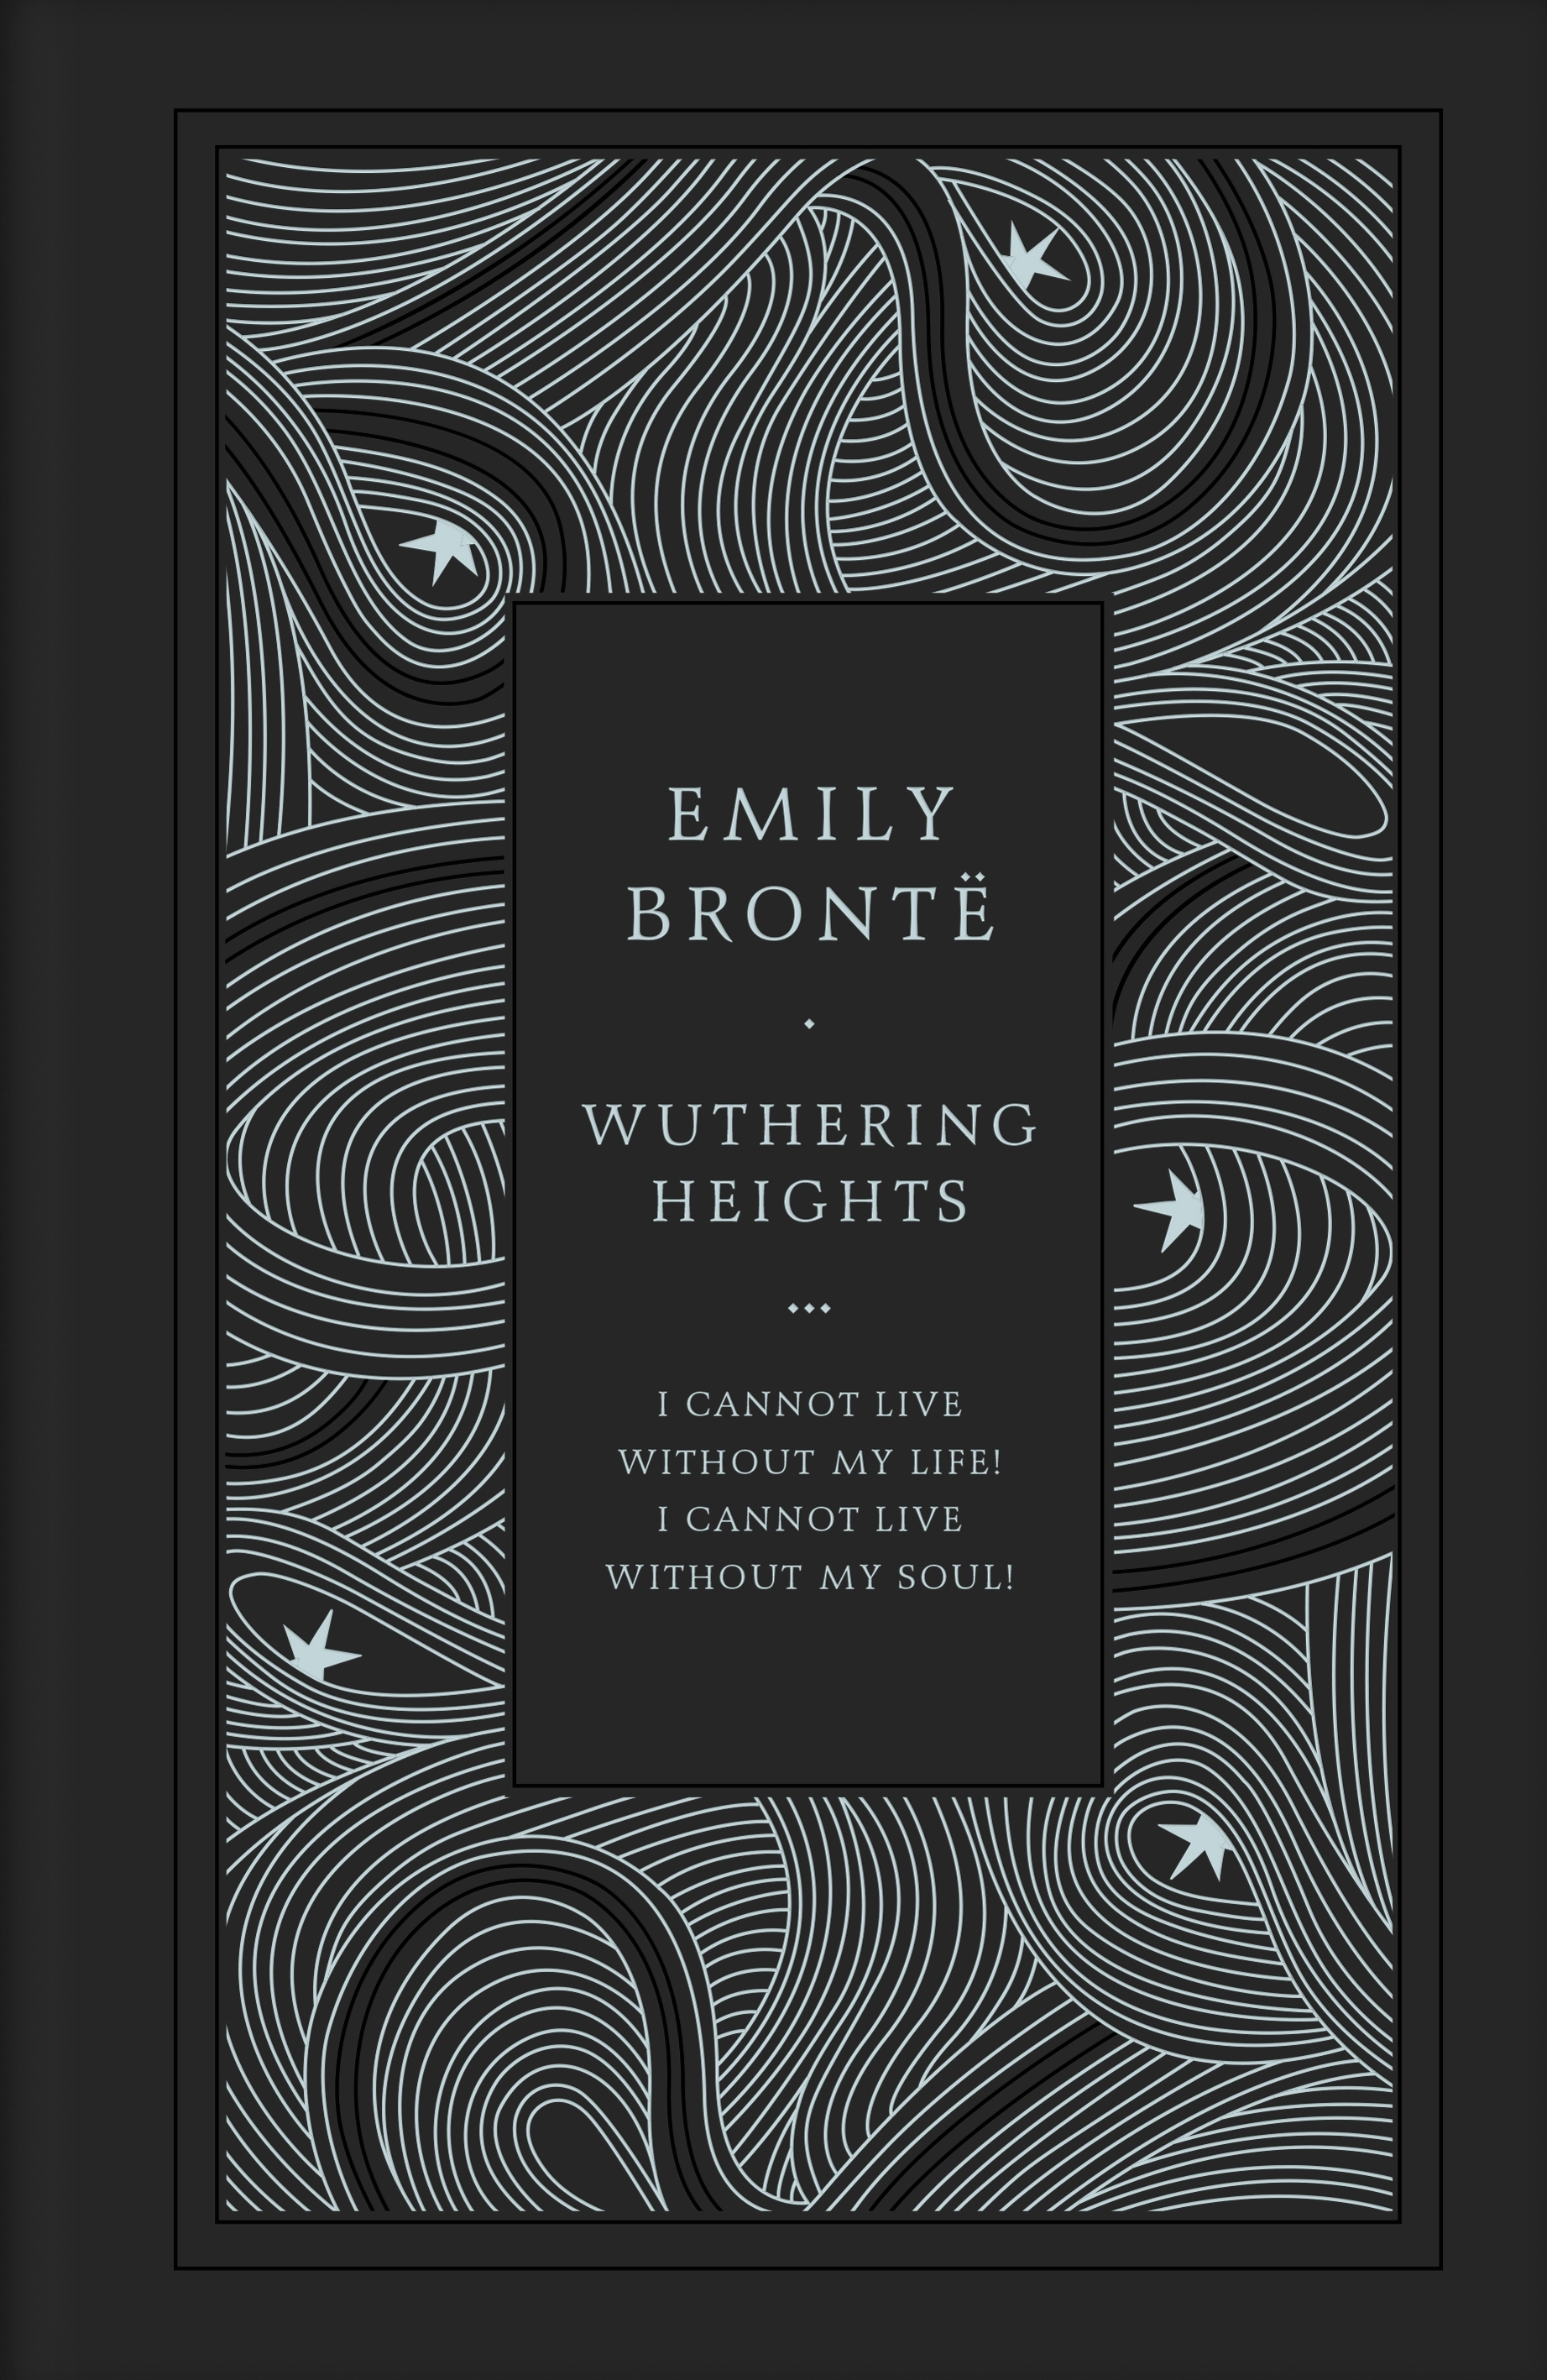 Wuthering Heights (Faux Leather Edition)Design by Coralie Bickford-Smith